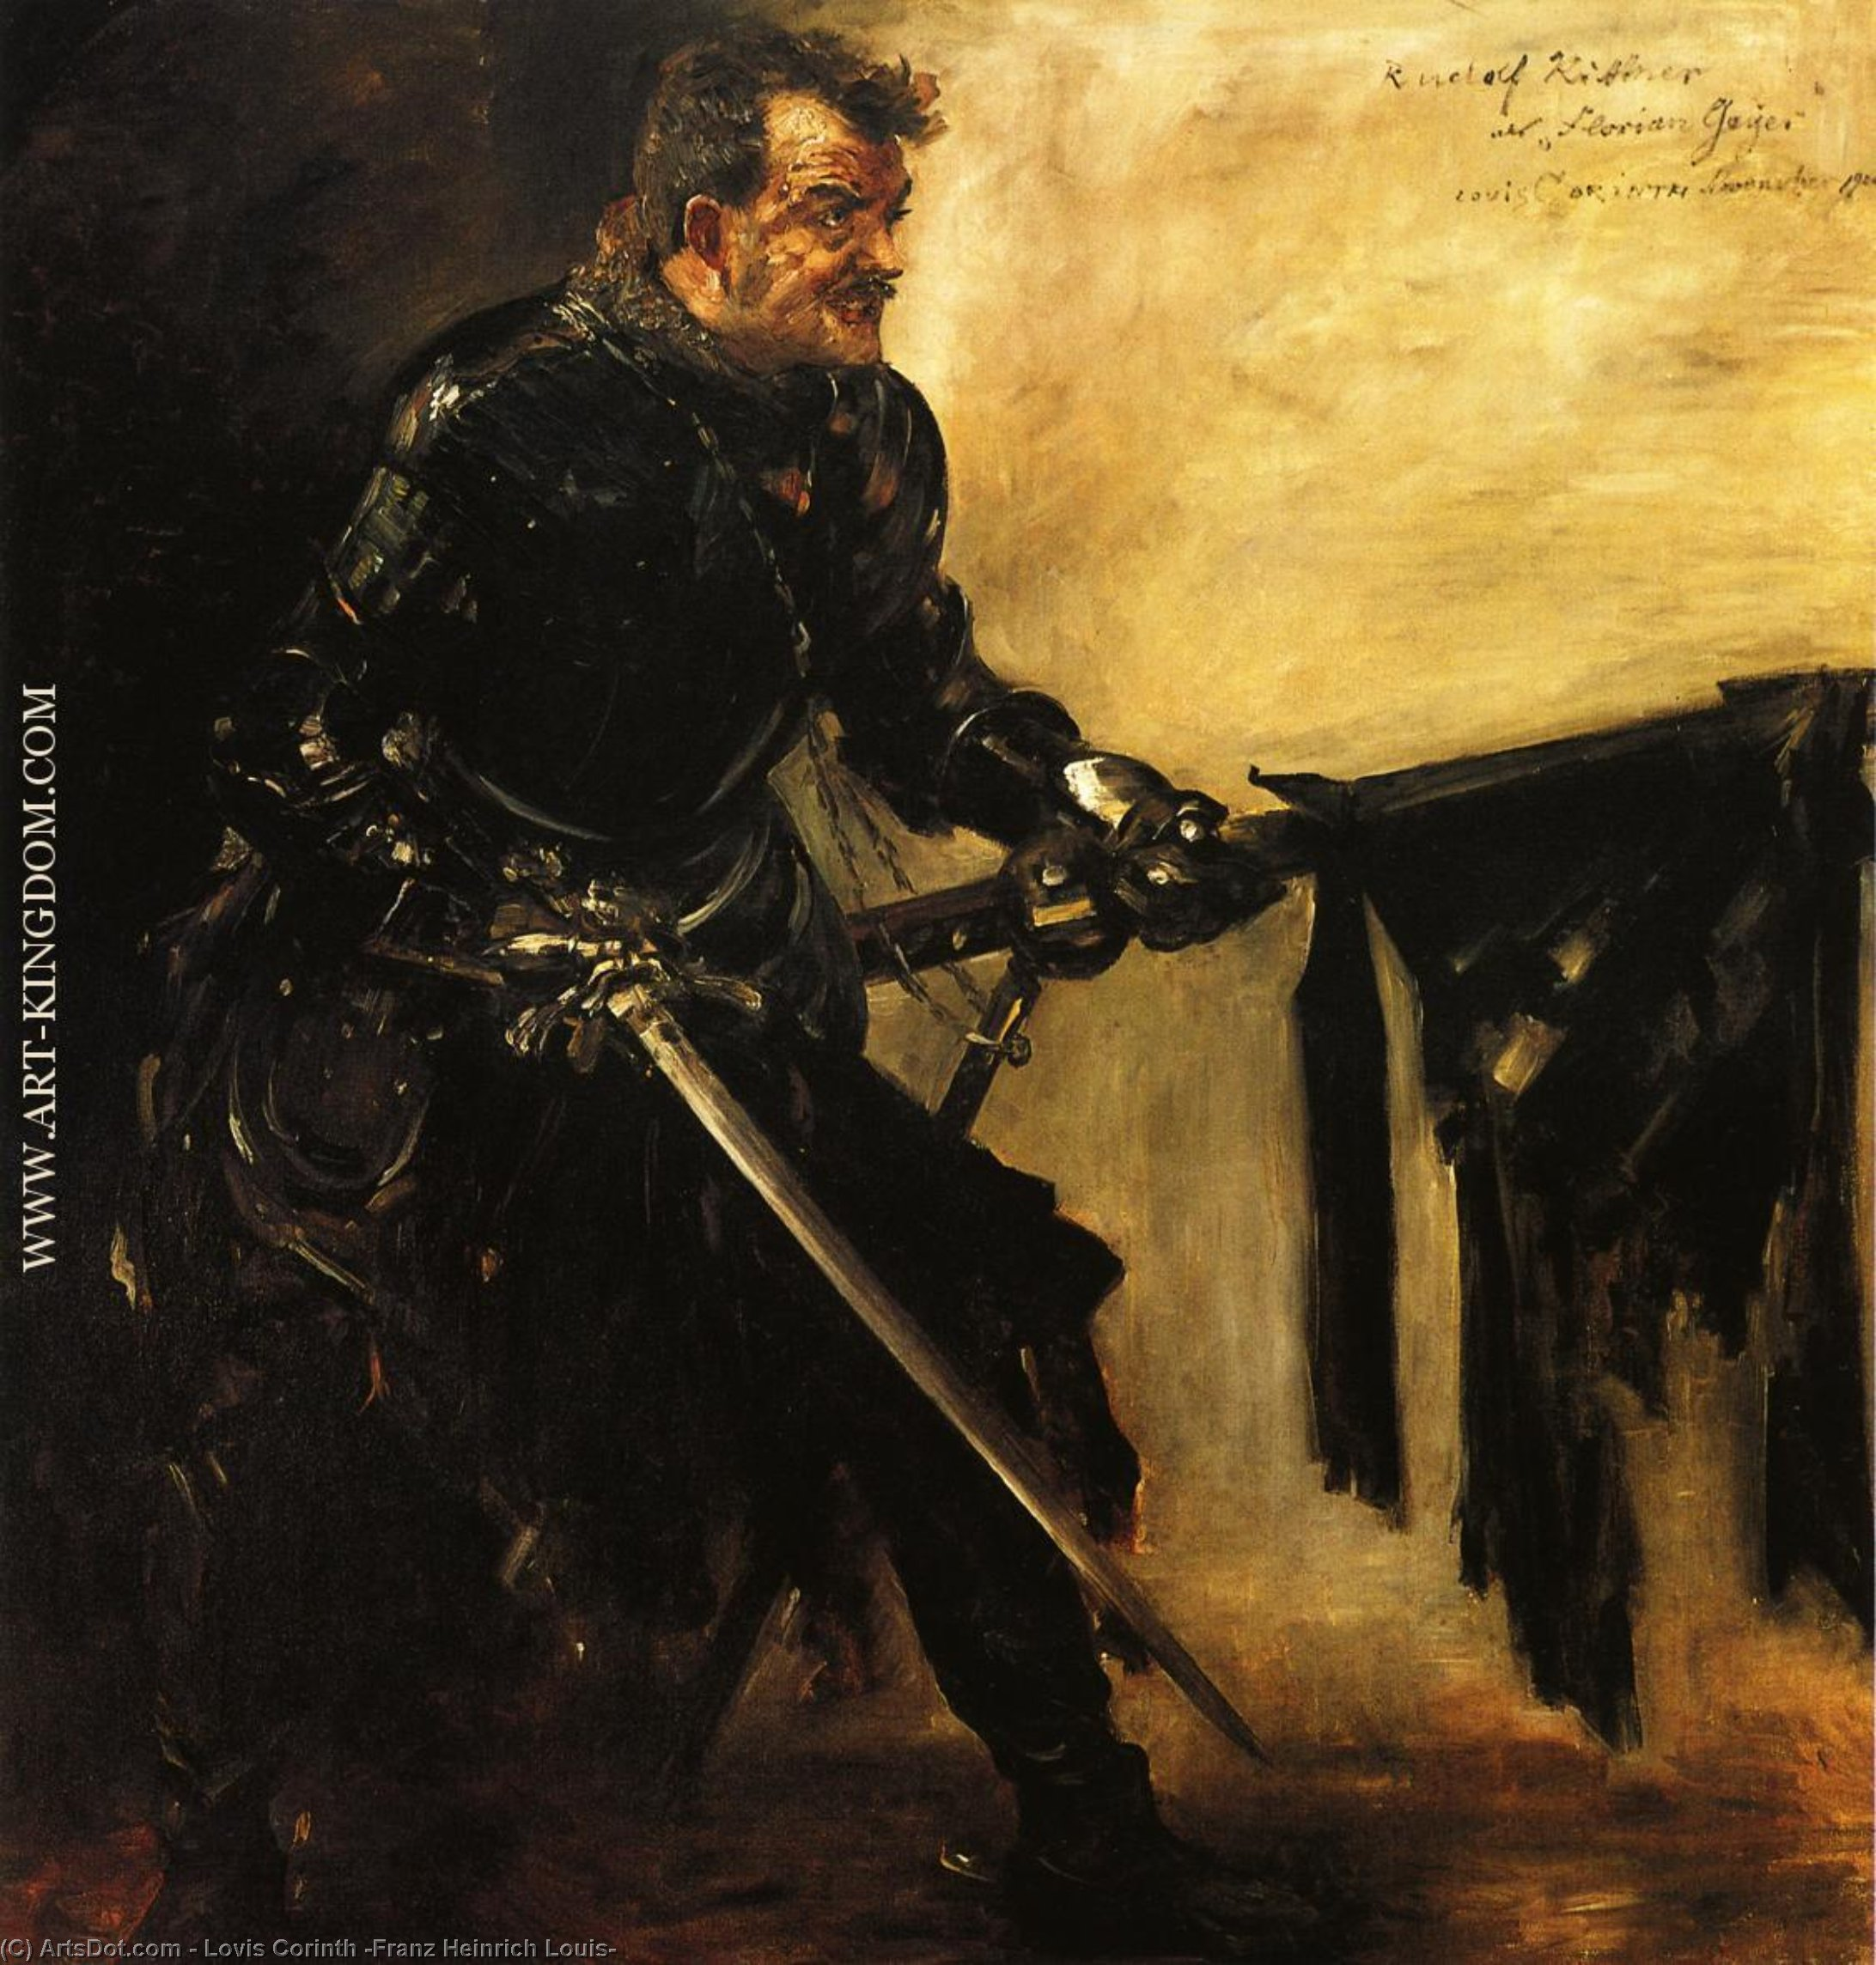 Cointh Lovis Rudolph Rittner as Florian Geyer First Version by Lovis Corinth (Franz Heinrich Louis) (1858-1925, Netherlands)